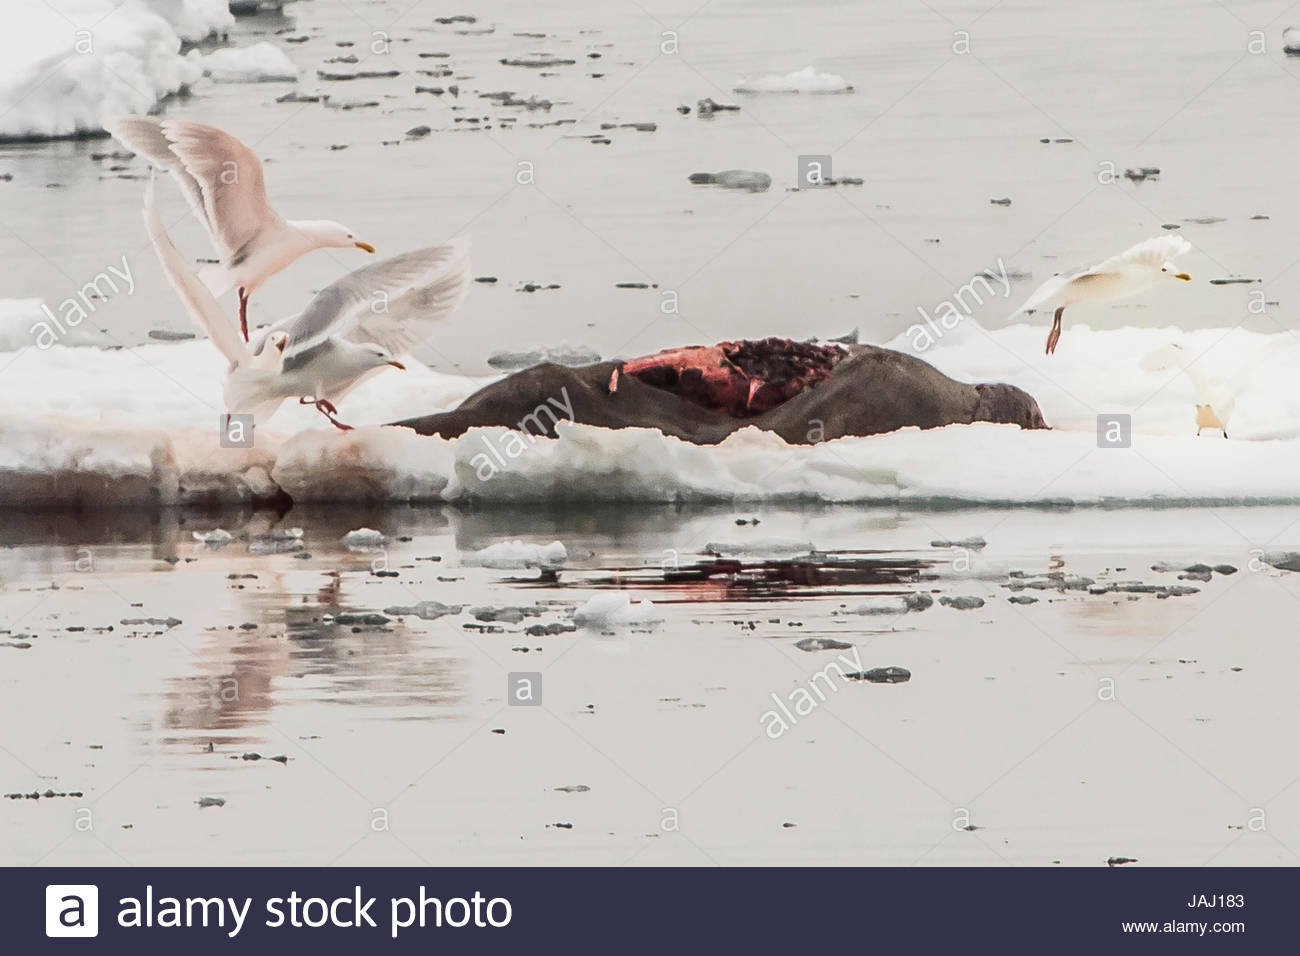 Glaucous gulls, Larus hyperboreus, scavenging a bearded seal carcass left by a polar bear. - Stock Image